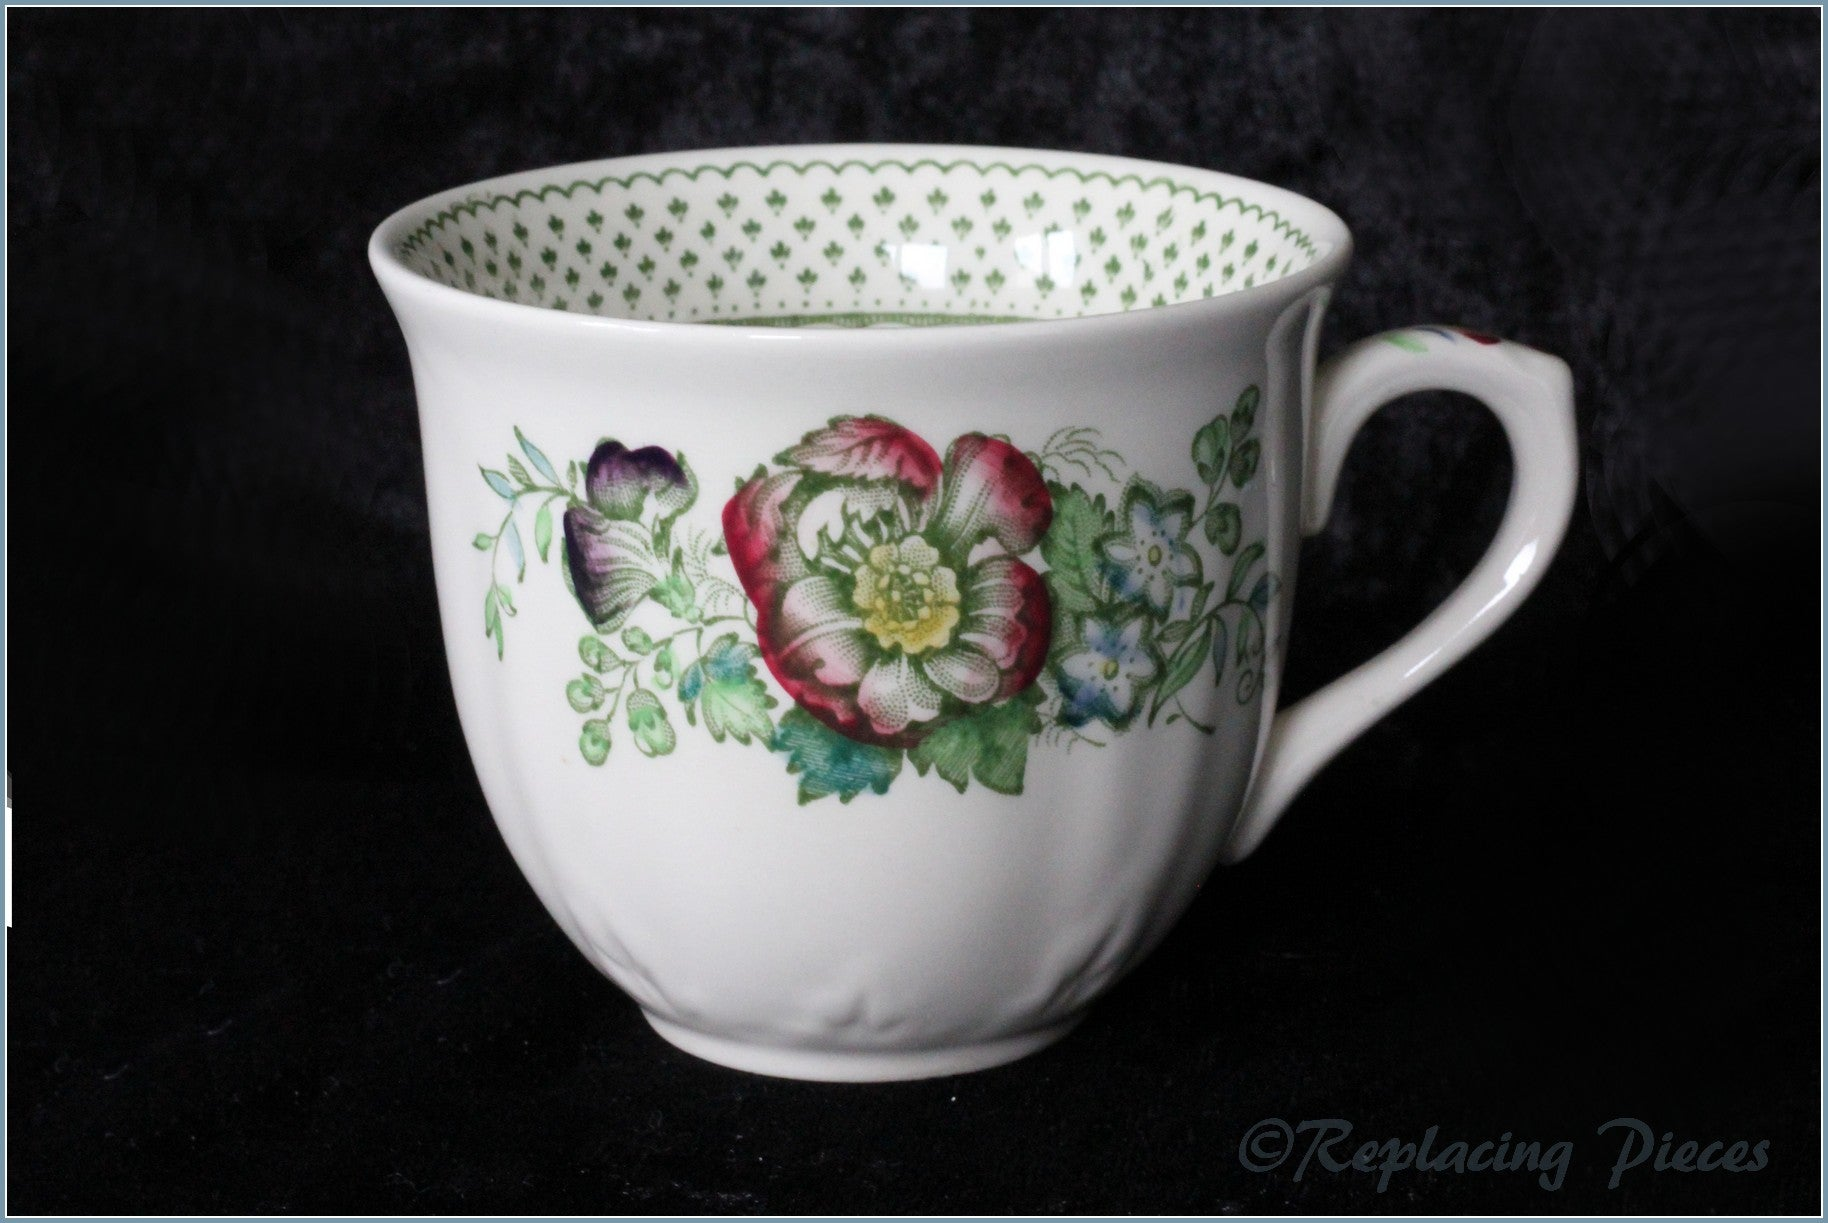 Masons - Paynsley (Green) - Teacup